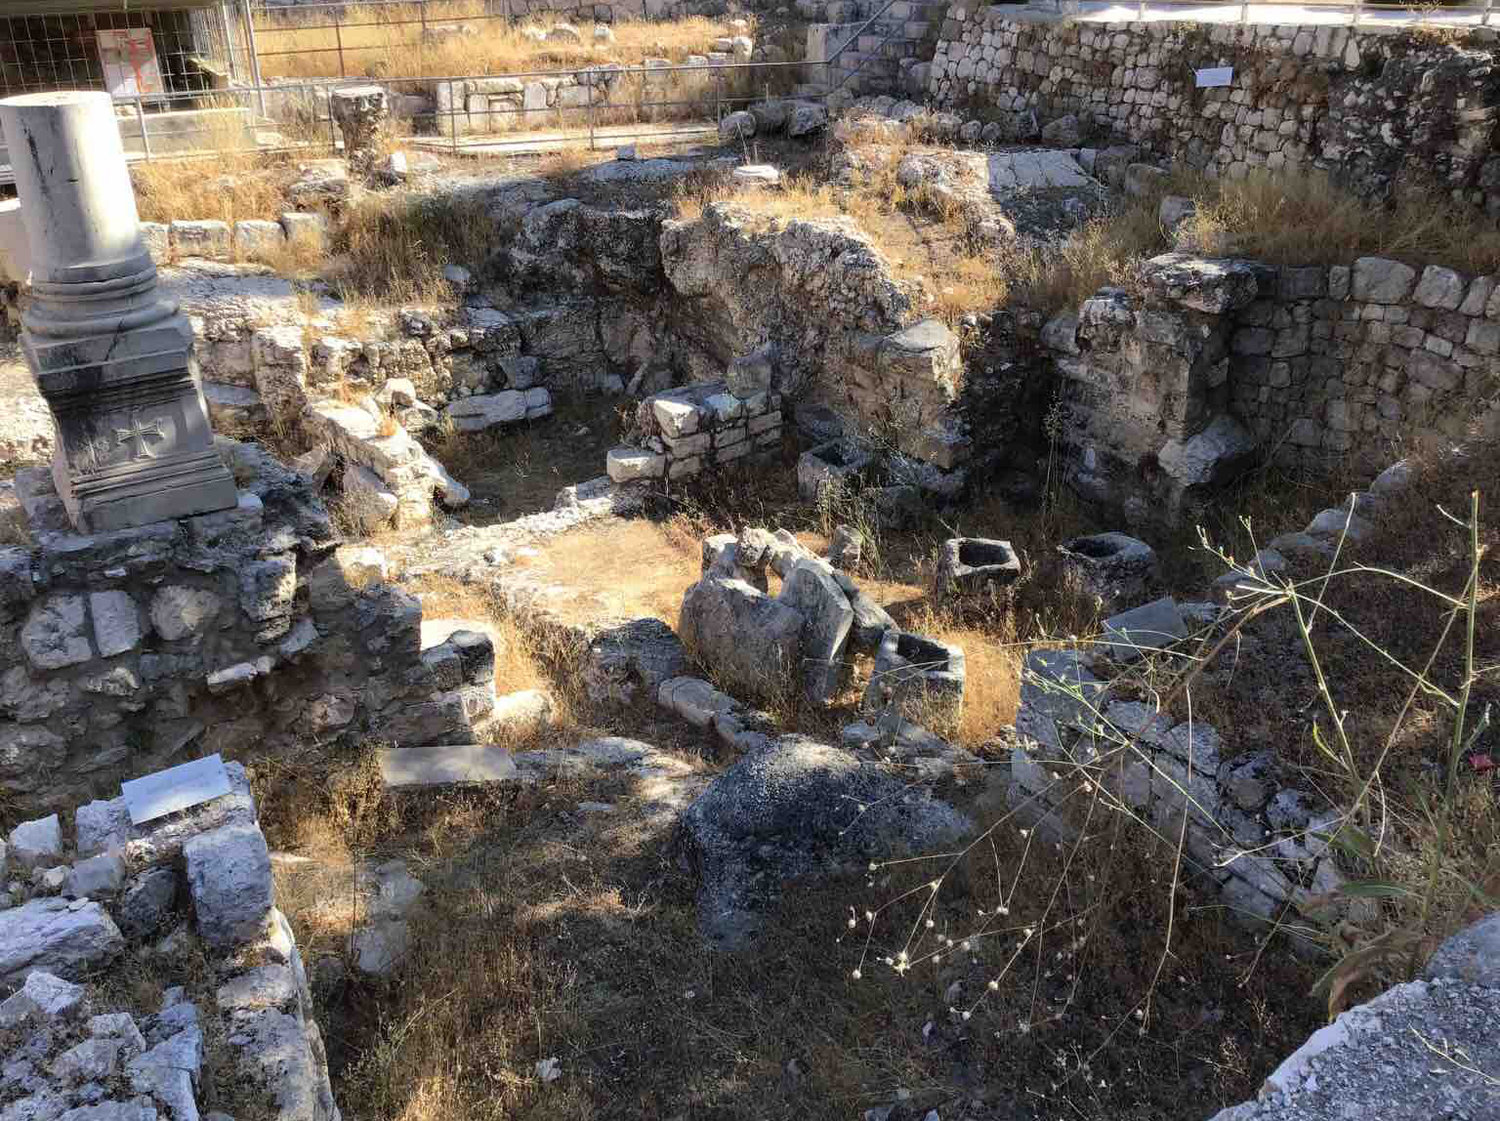 The Pool of Bethesda.